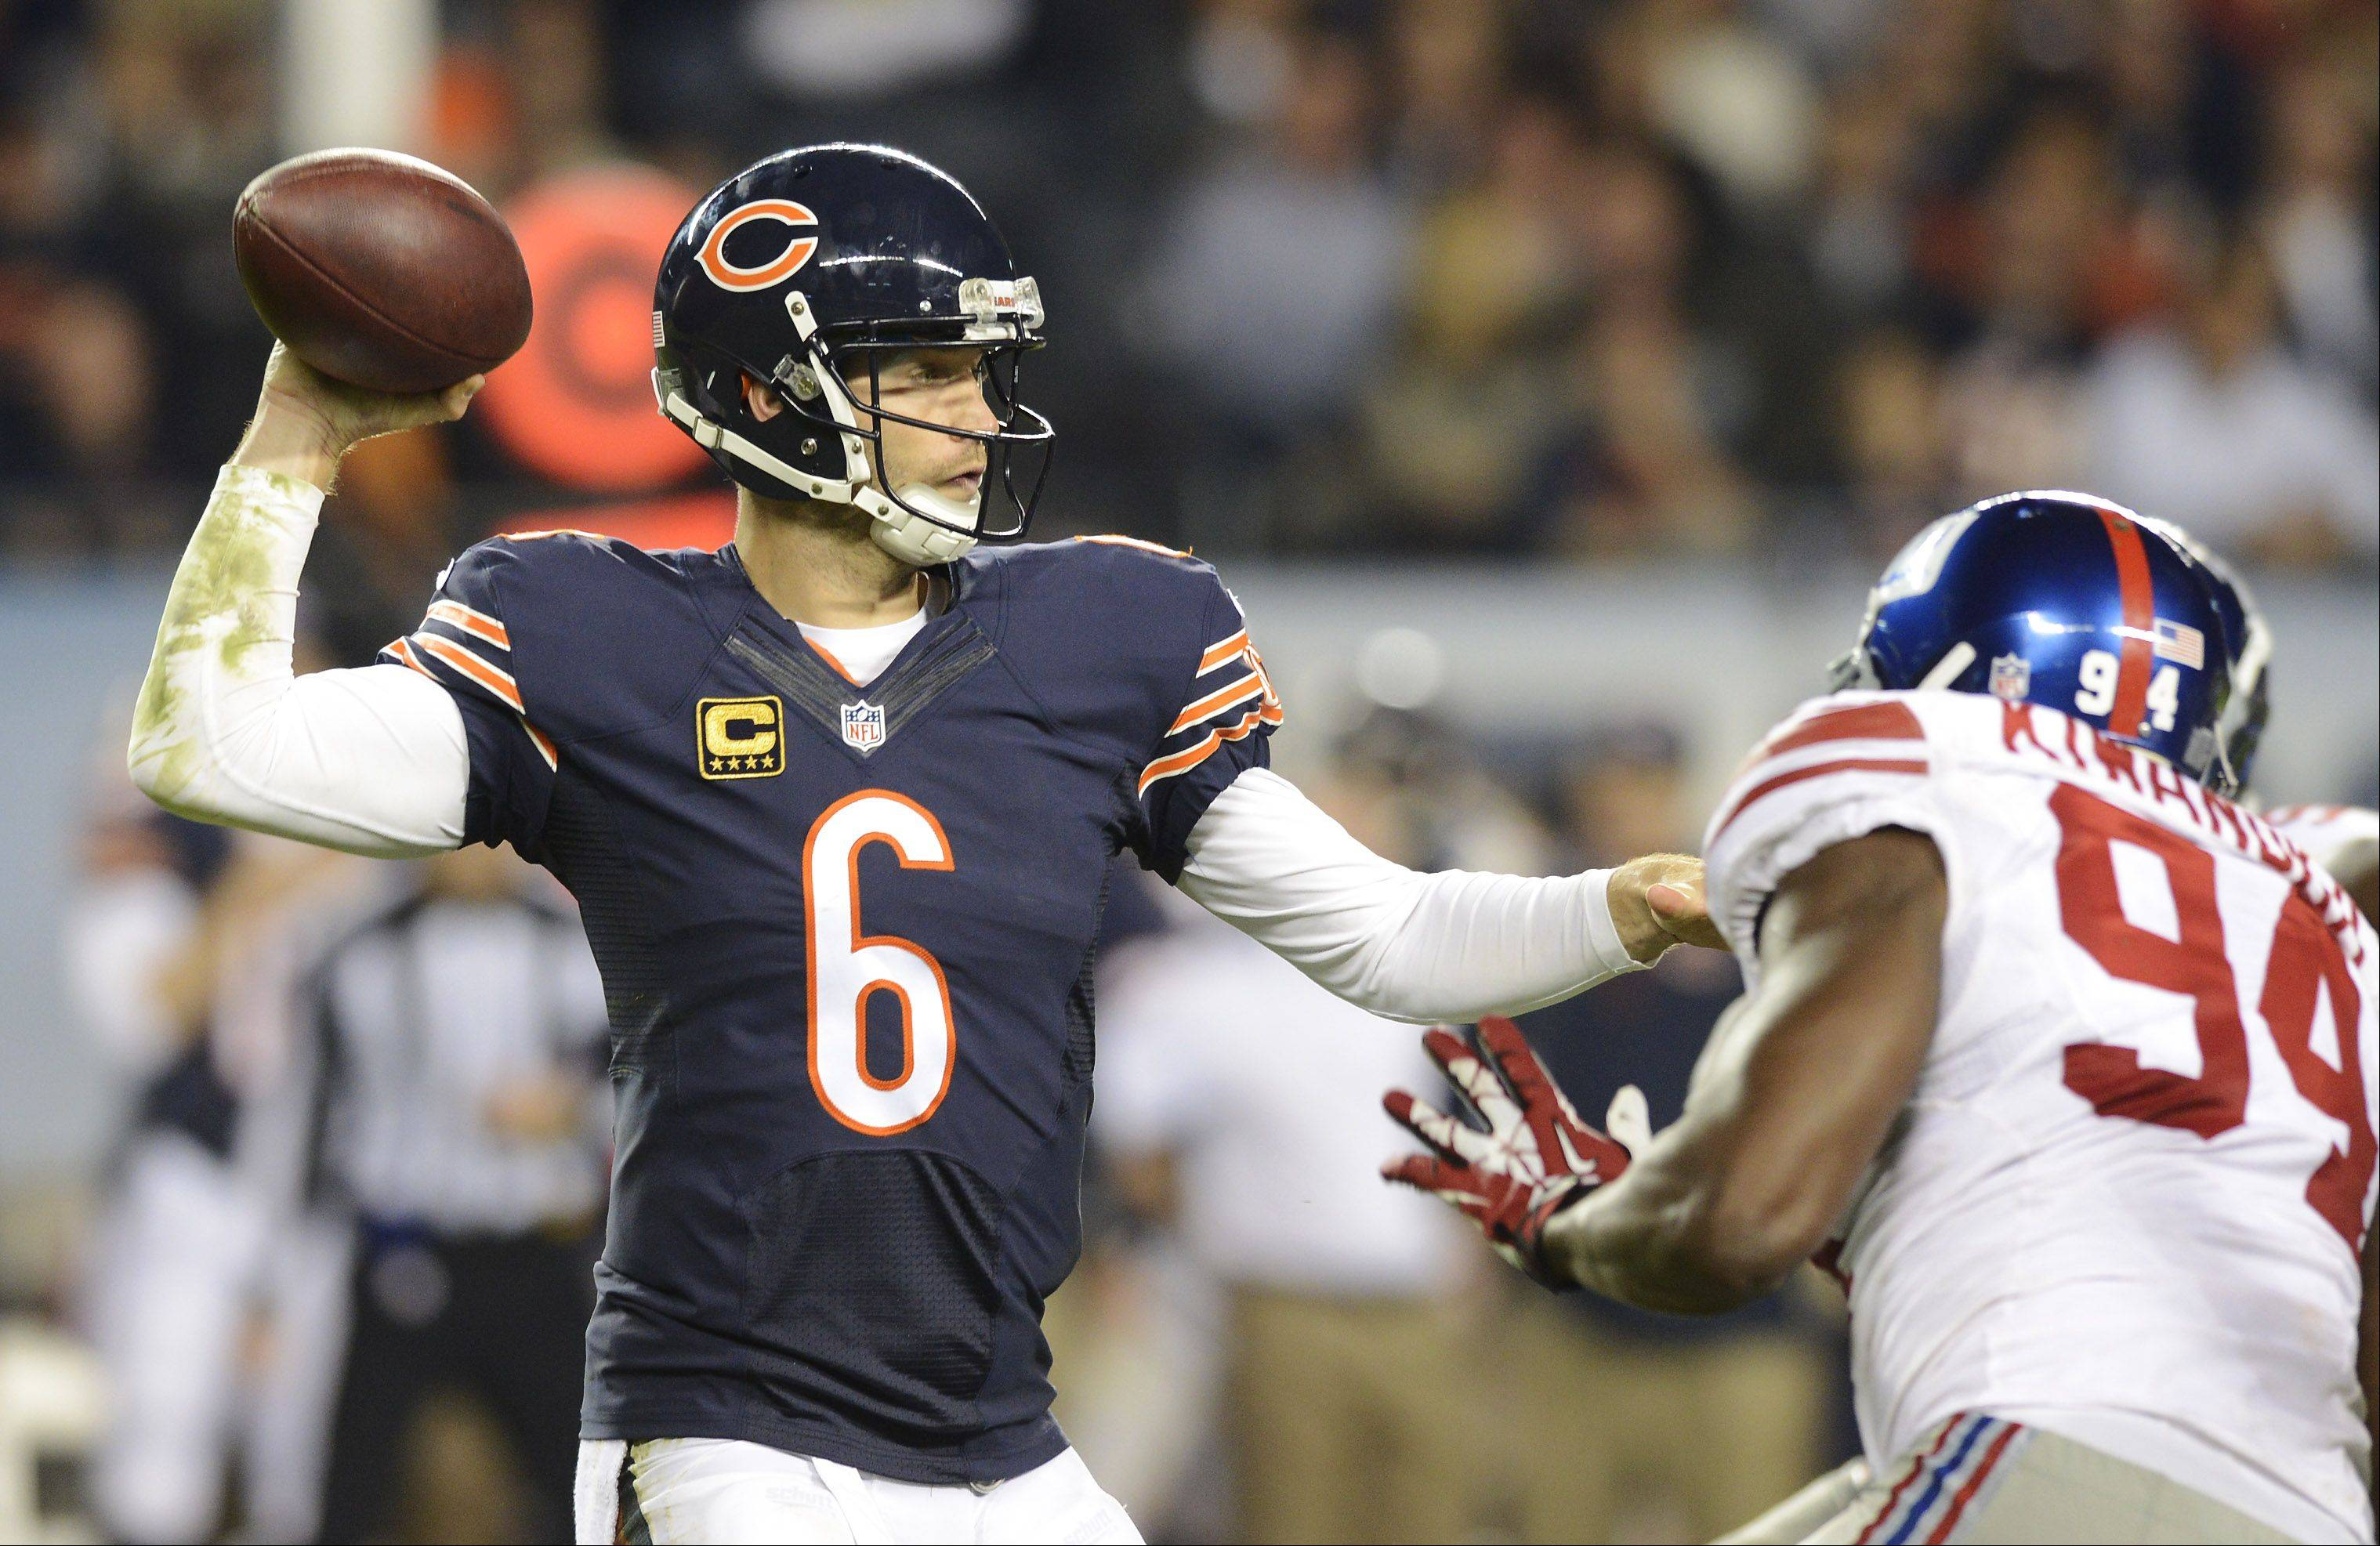 Bears quarterback Jay Cutler throws a pass as New York Giants defensive end Mathias Kiwanuka closes in during Thursday's game at Soldier Field.